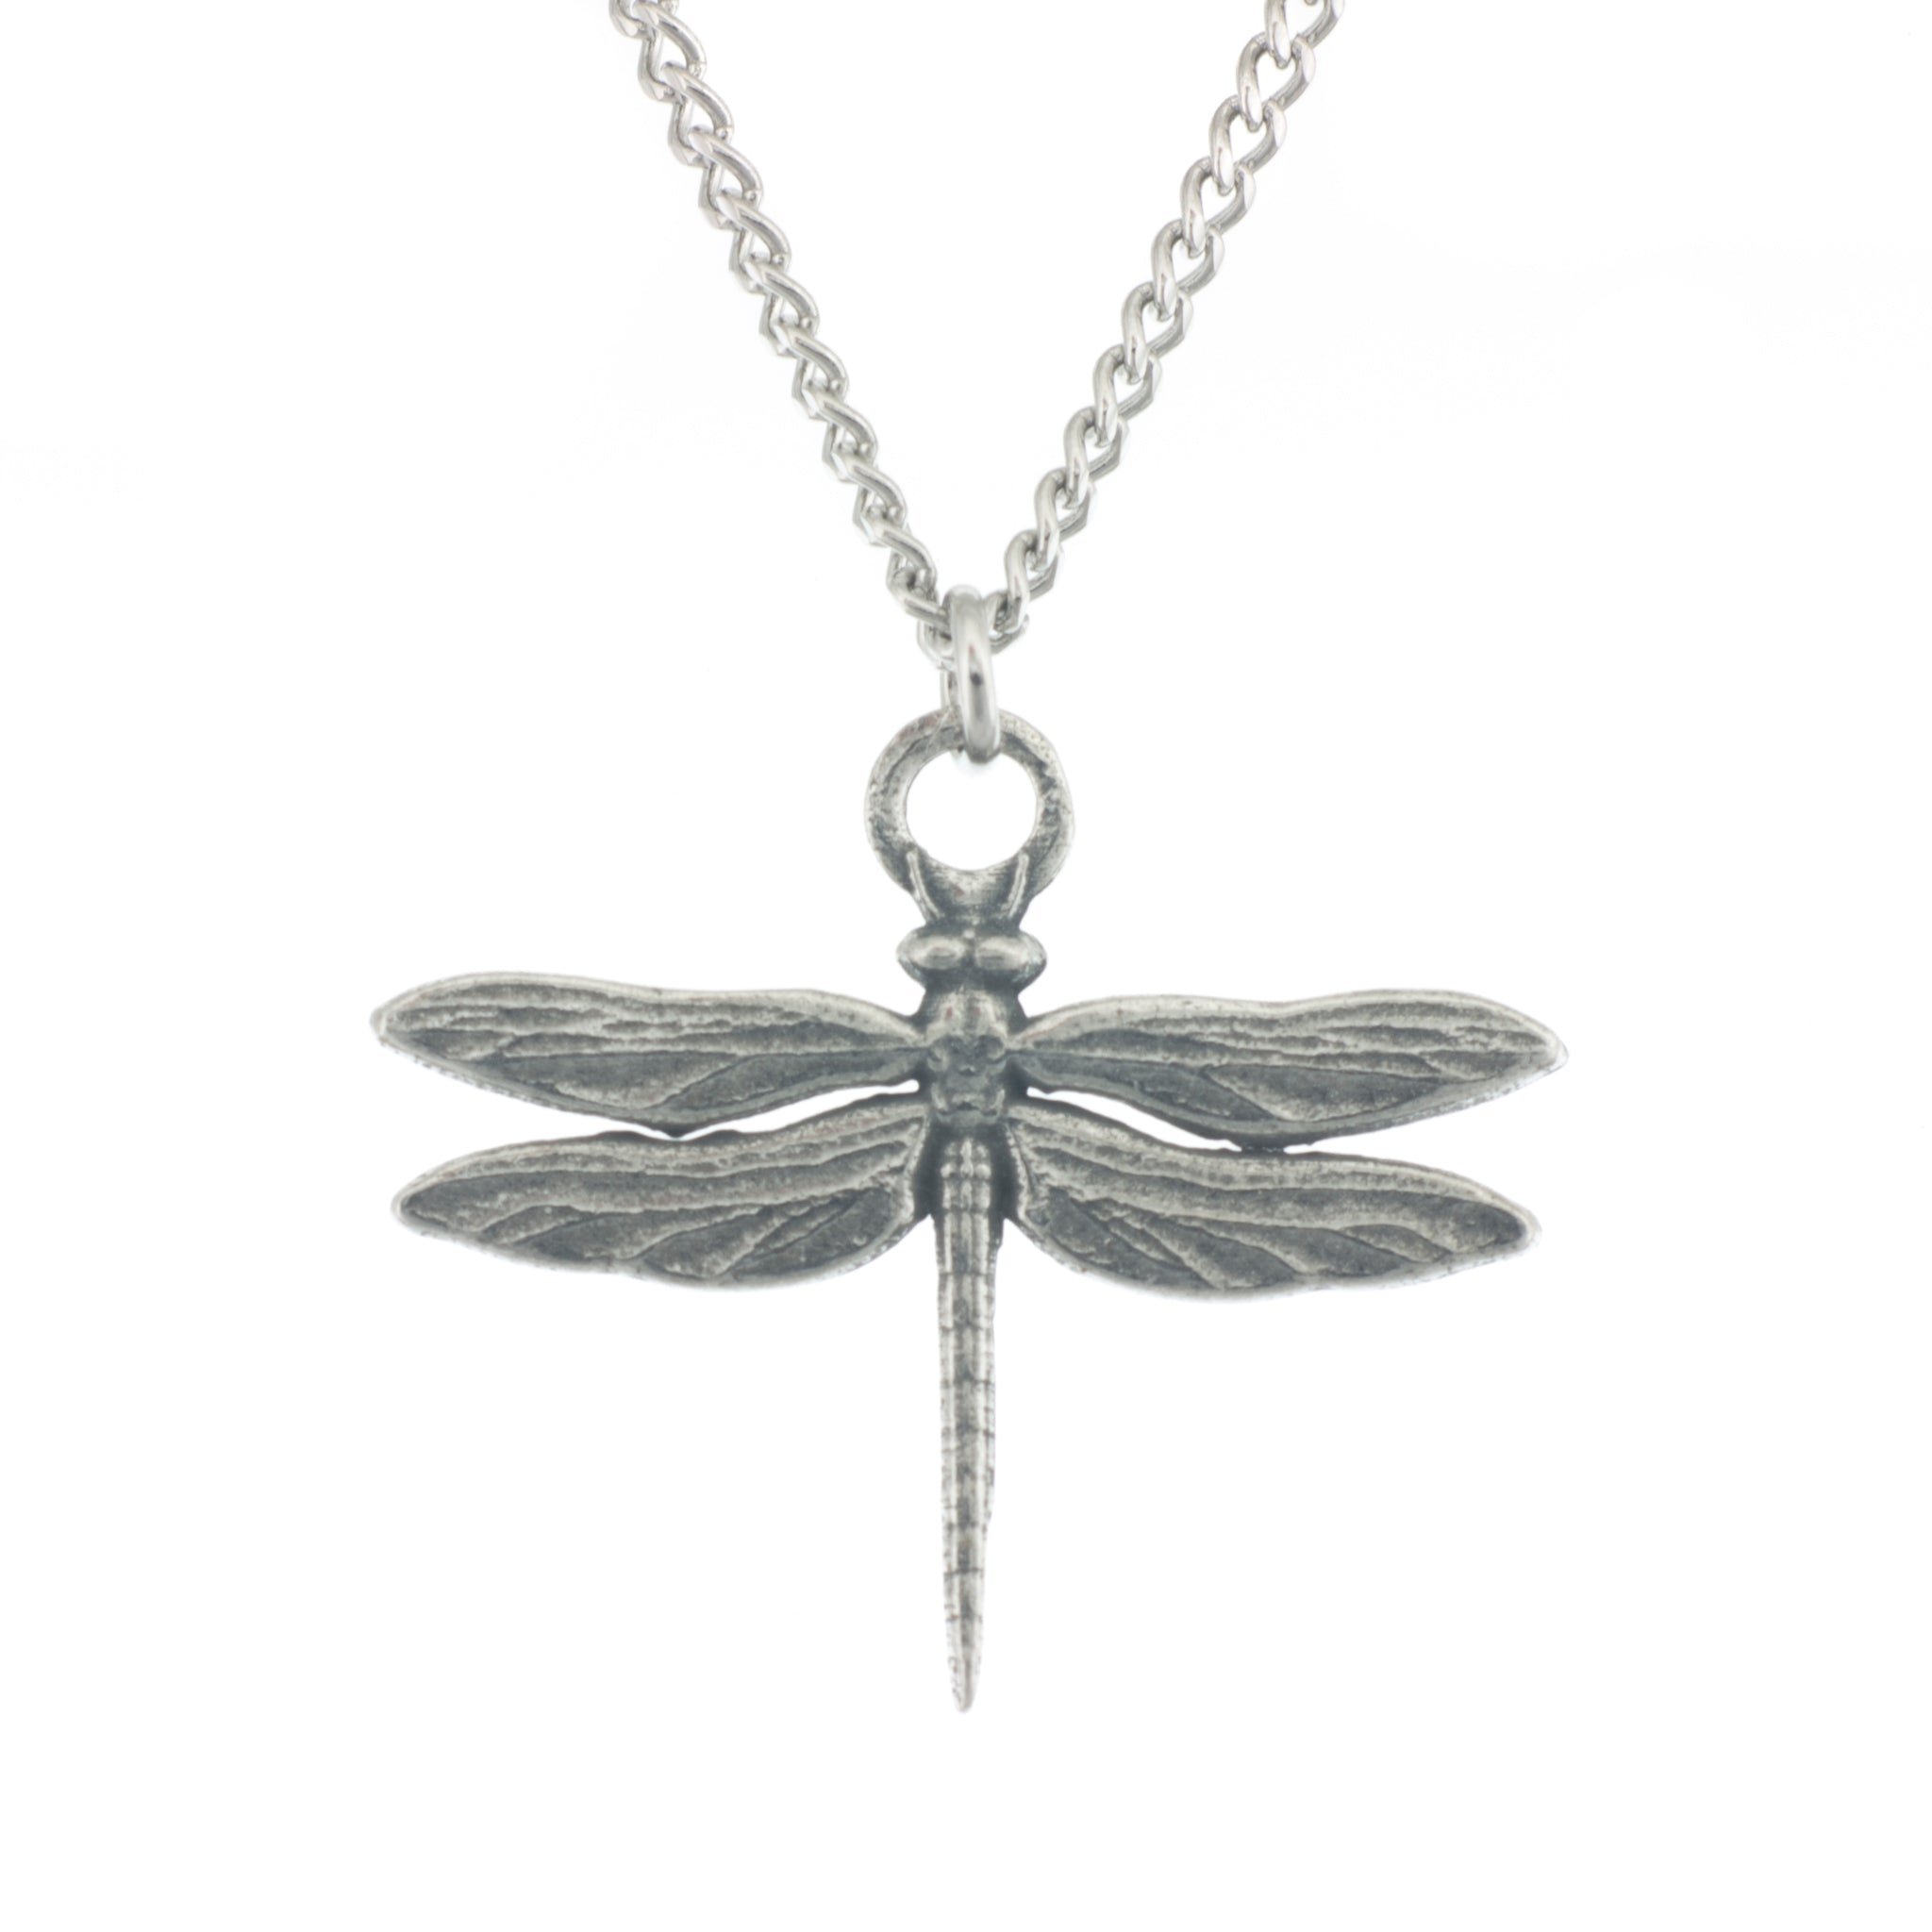 dragongly dragonfly button prince necklace fredrick artisan jewelry embellished pendant products